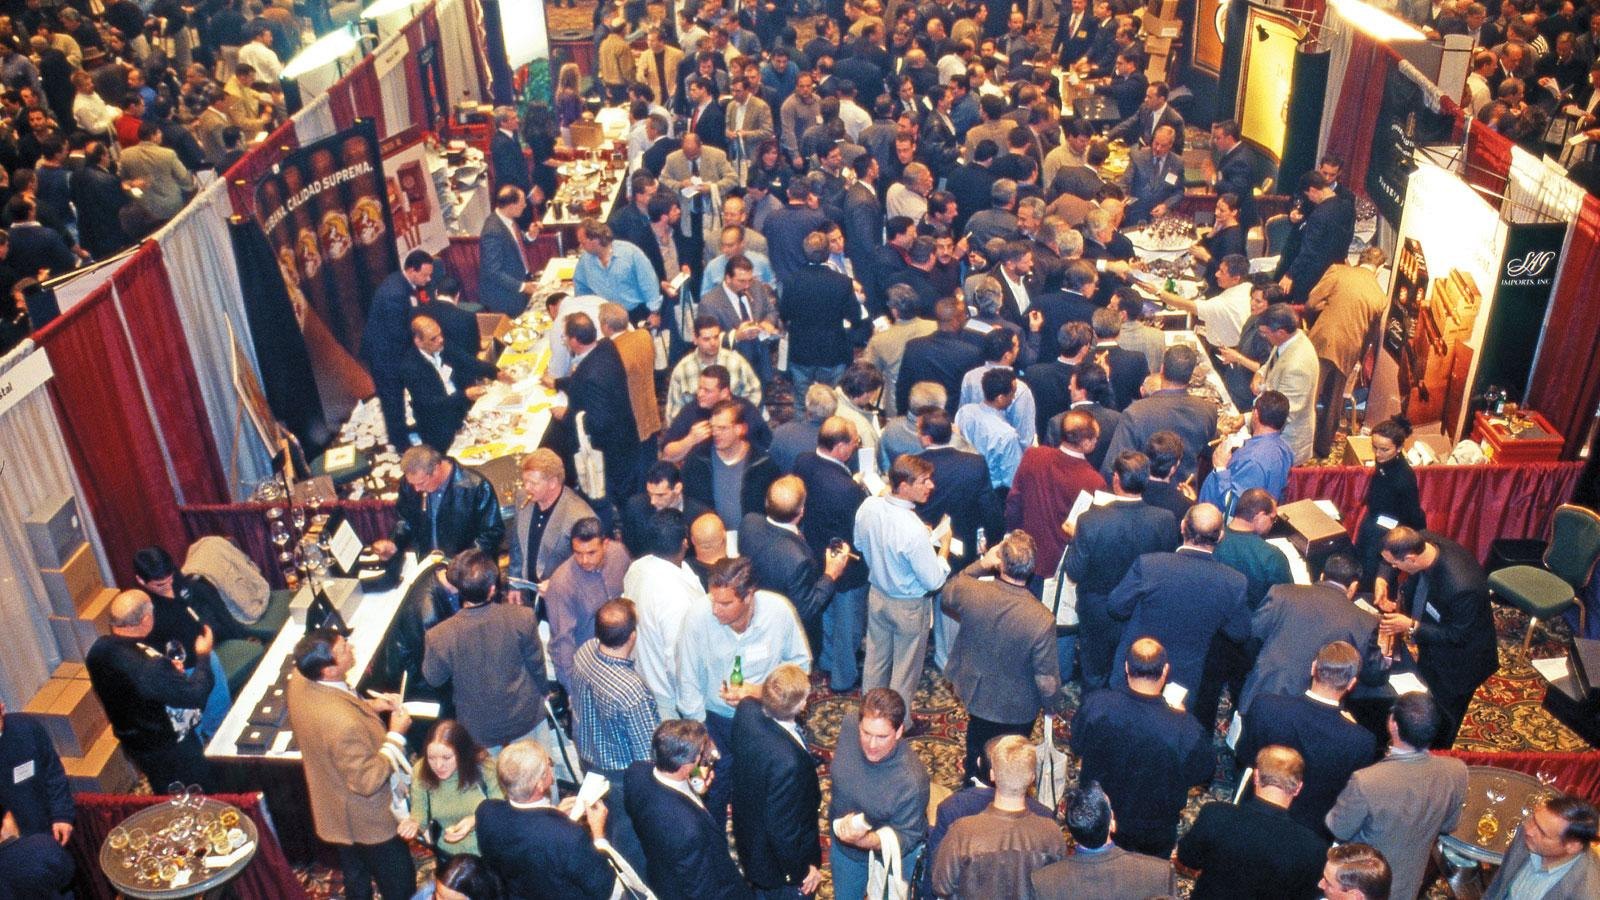 Cigar consumers eagerly sampling the wide array of cigars at a Cigar Aficionado Big Smoke in 2000.